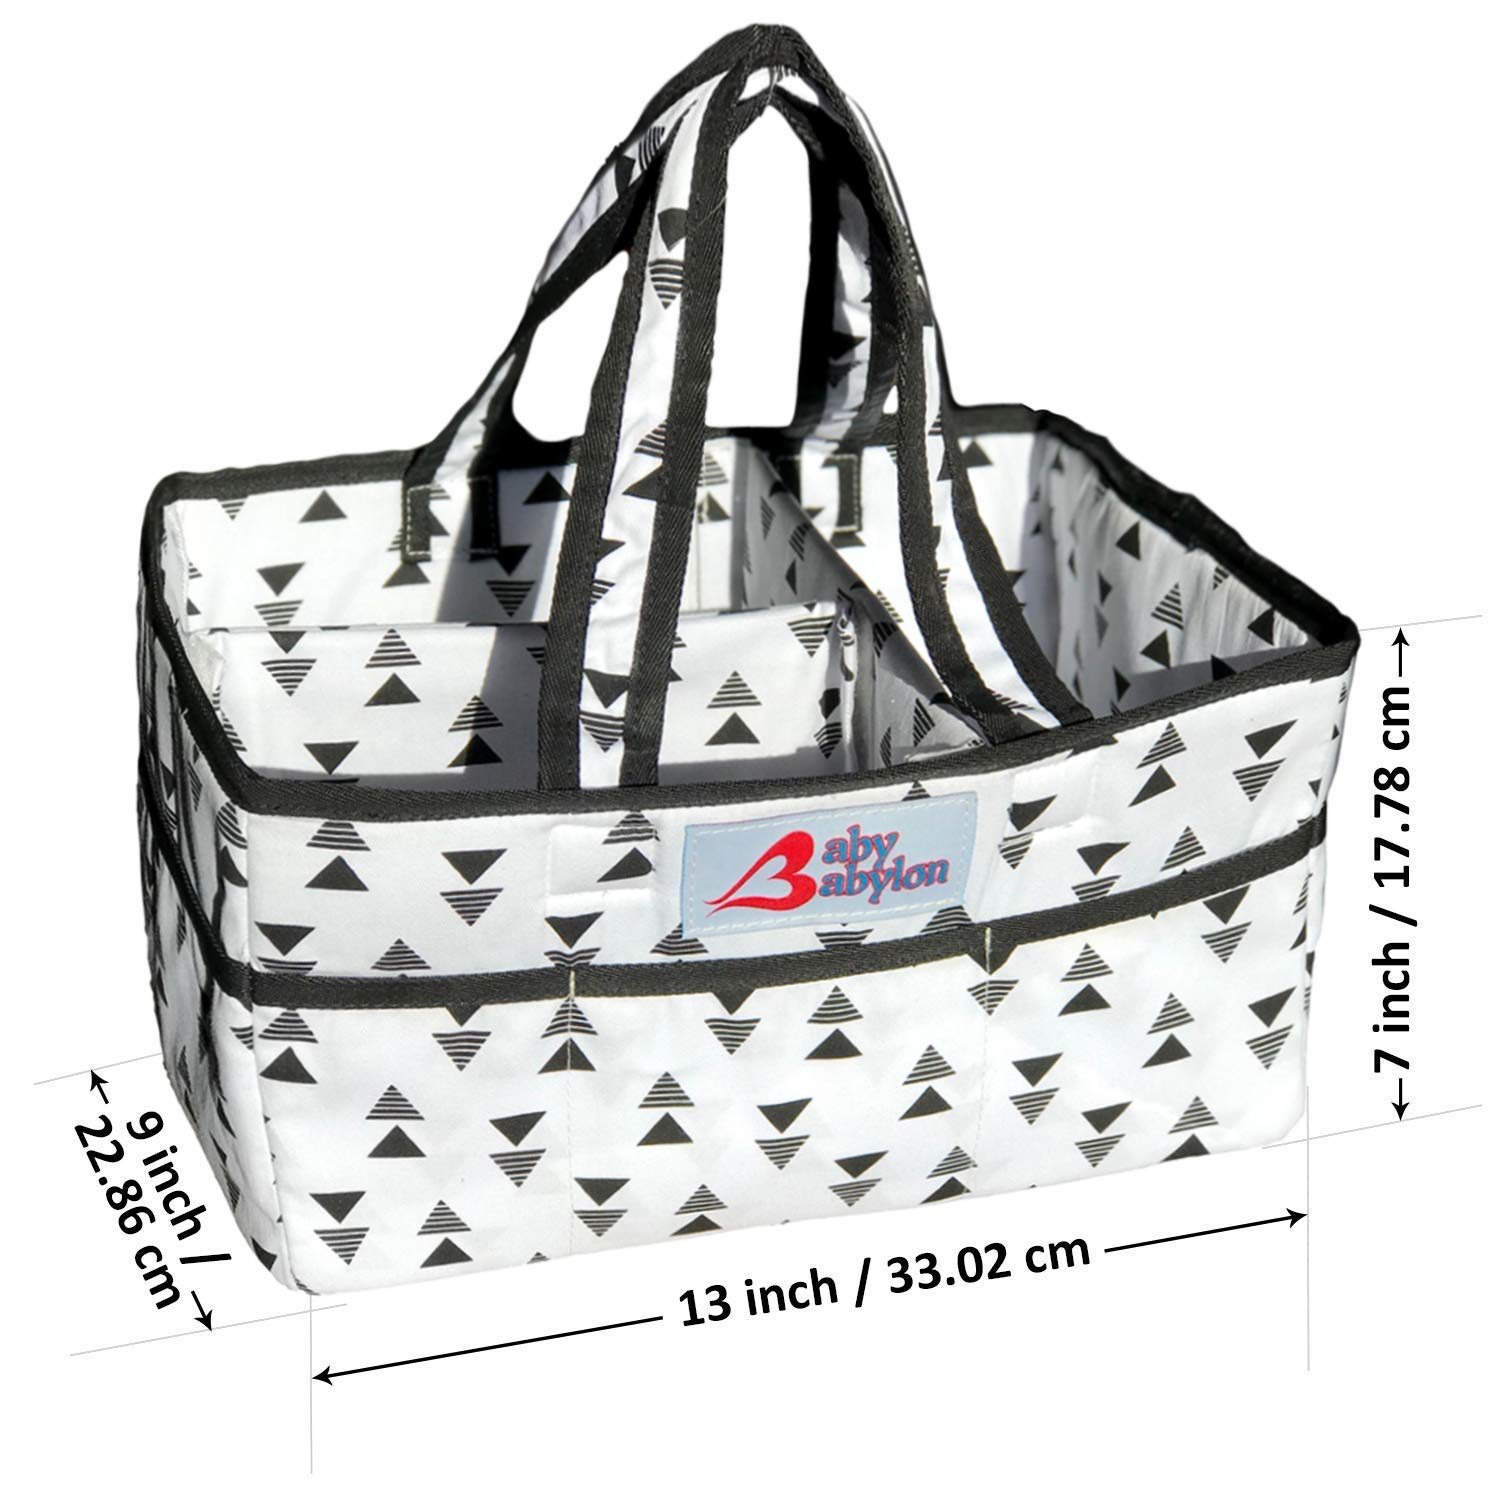 Large Organizer Tote Bag For Infant Boy Or Girl Baby Loyal Lily Miles Baby Diaper Caddy